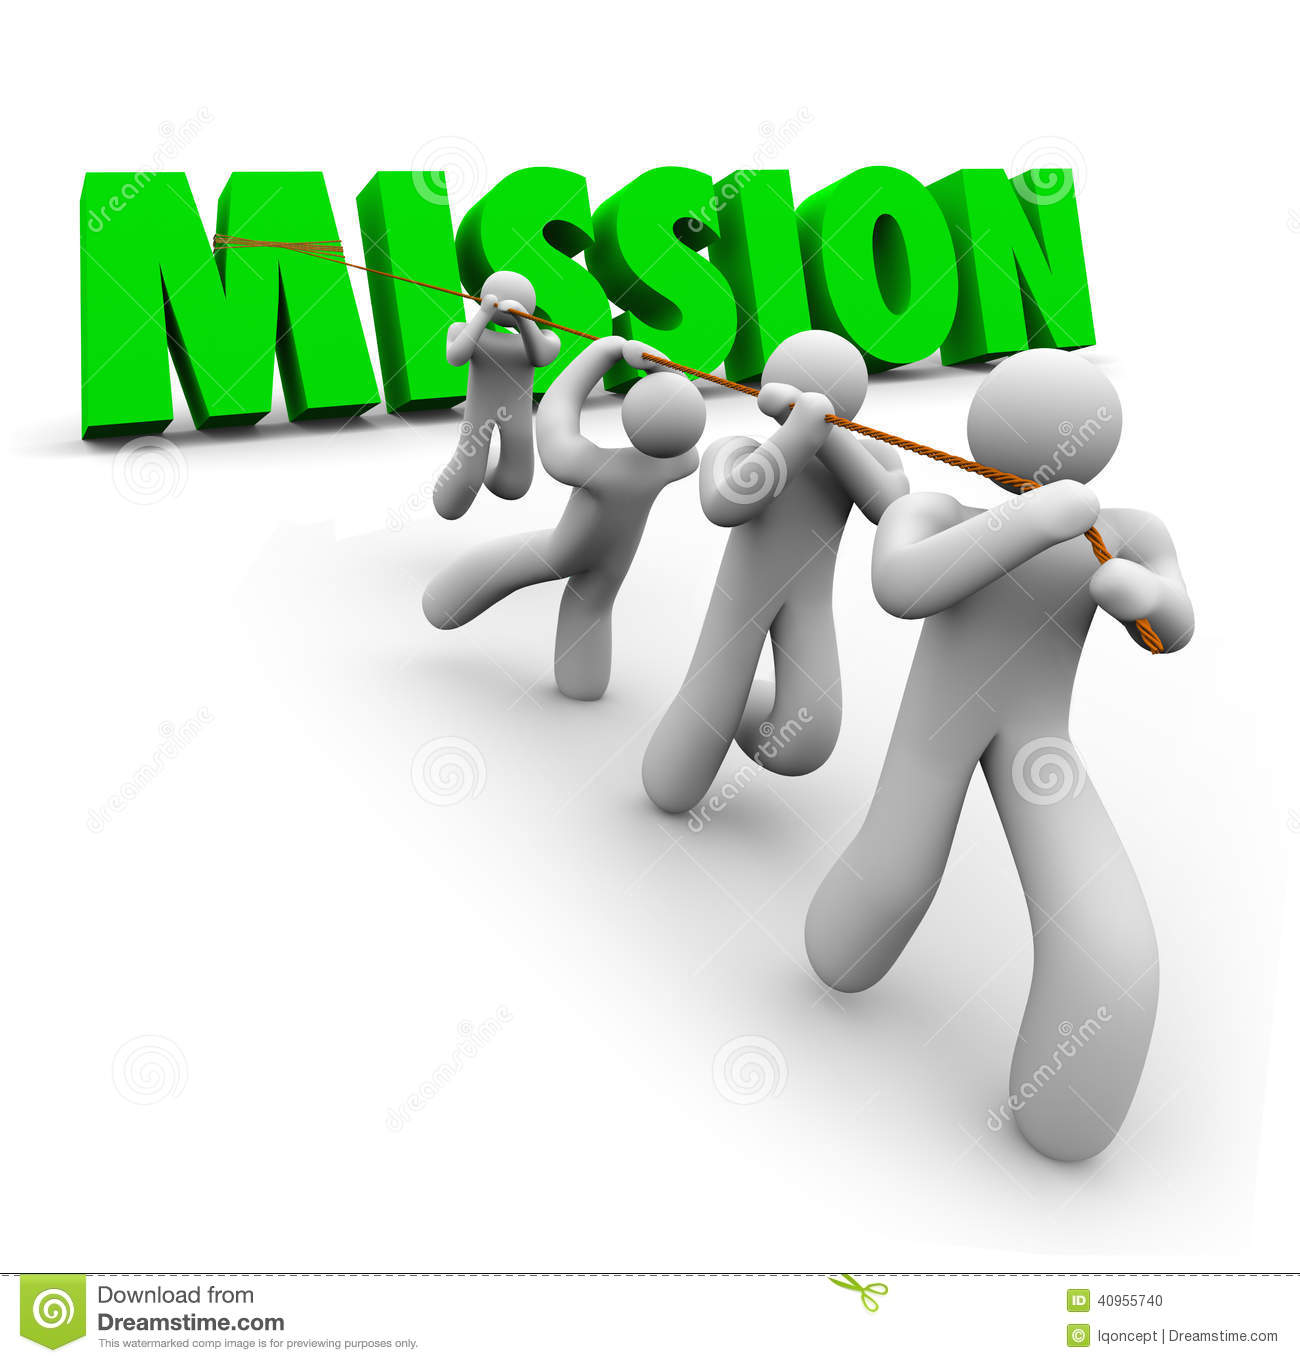 Task panda free images. Missions clipart goal objective